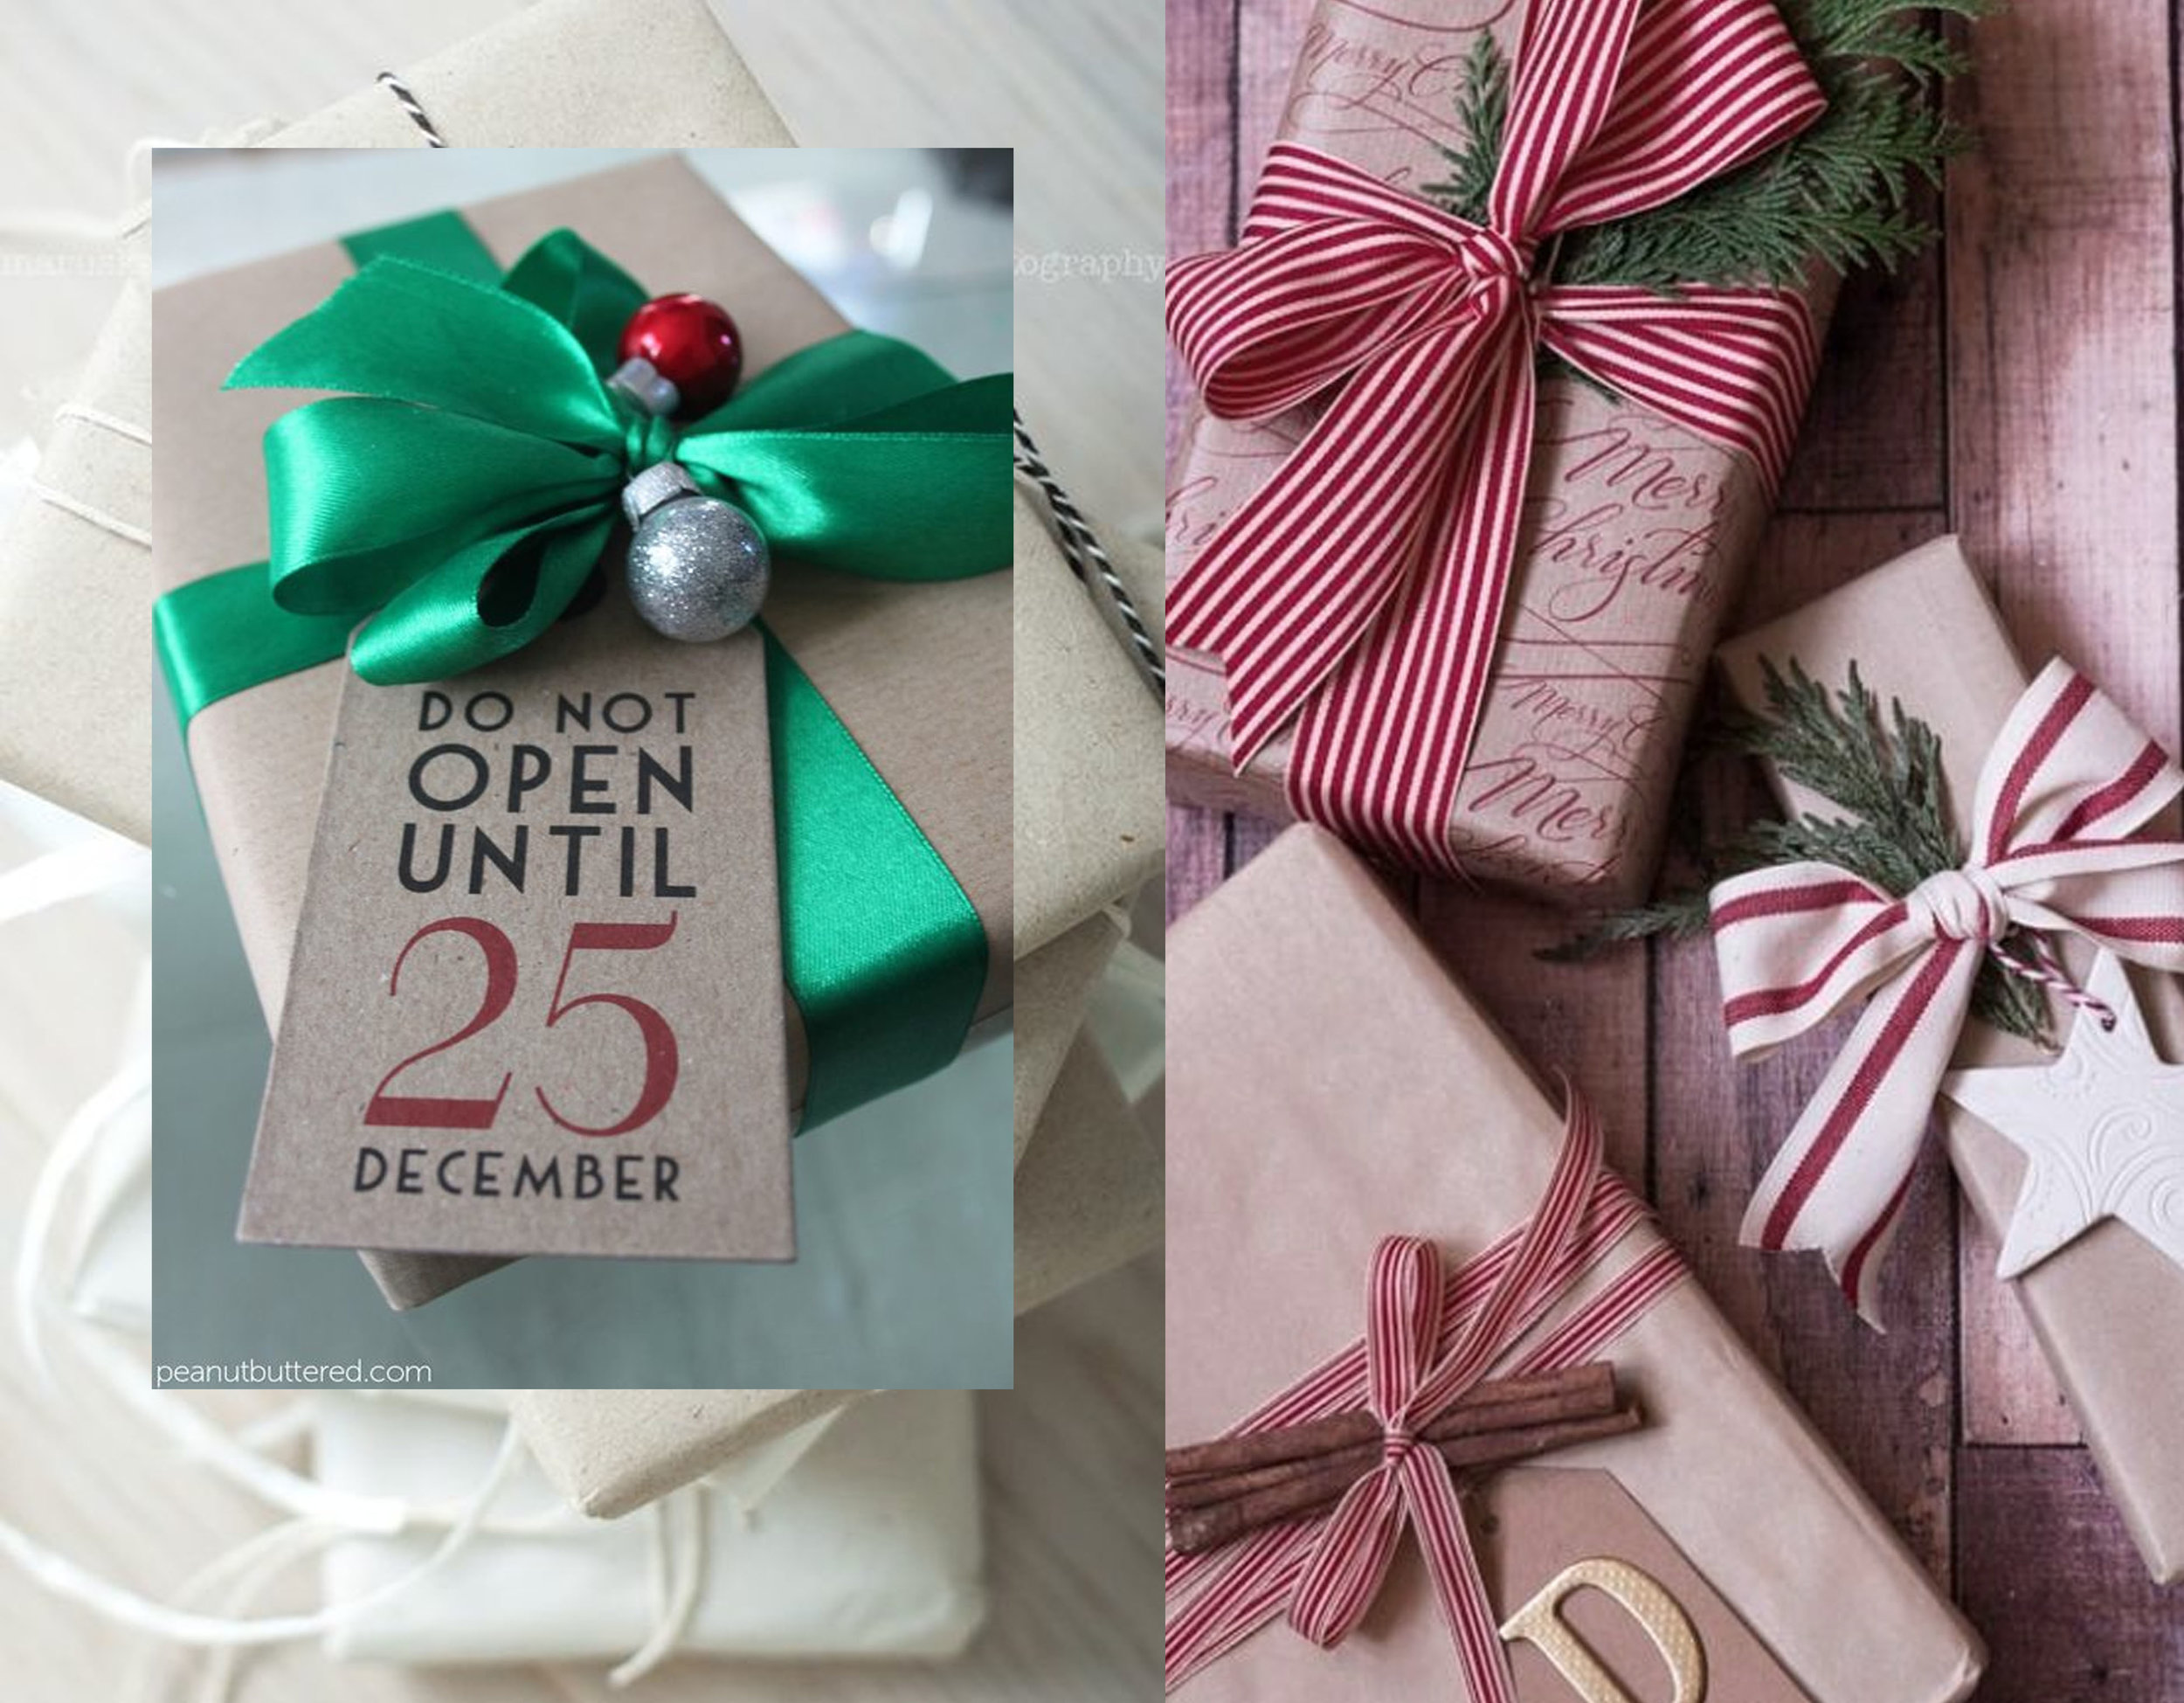 wrapping ideas  Peanut Buttered  -  Ebay